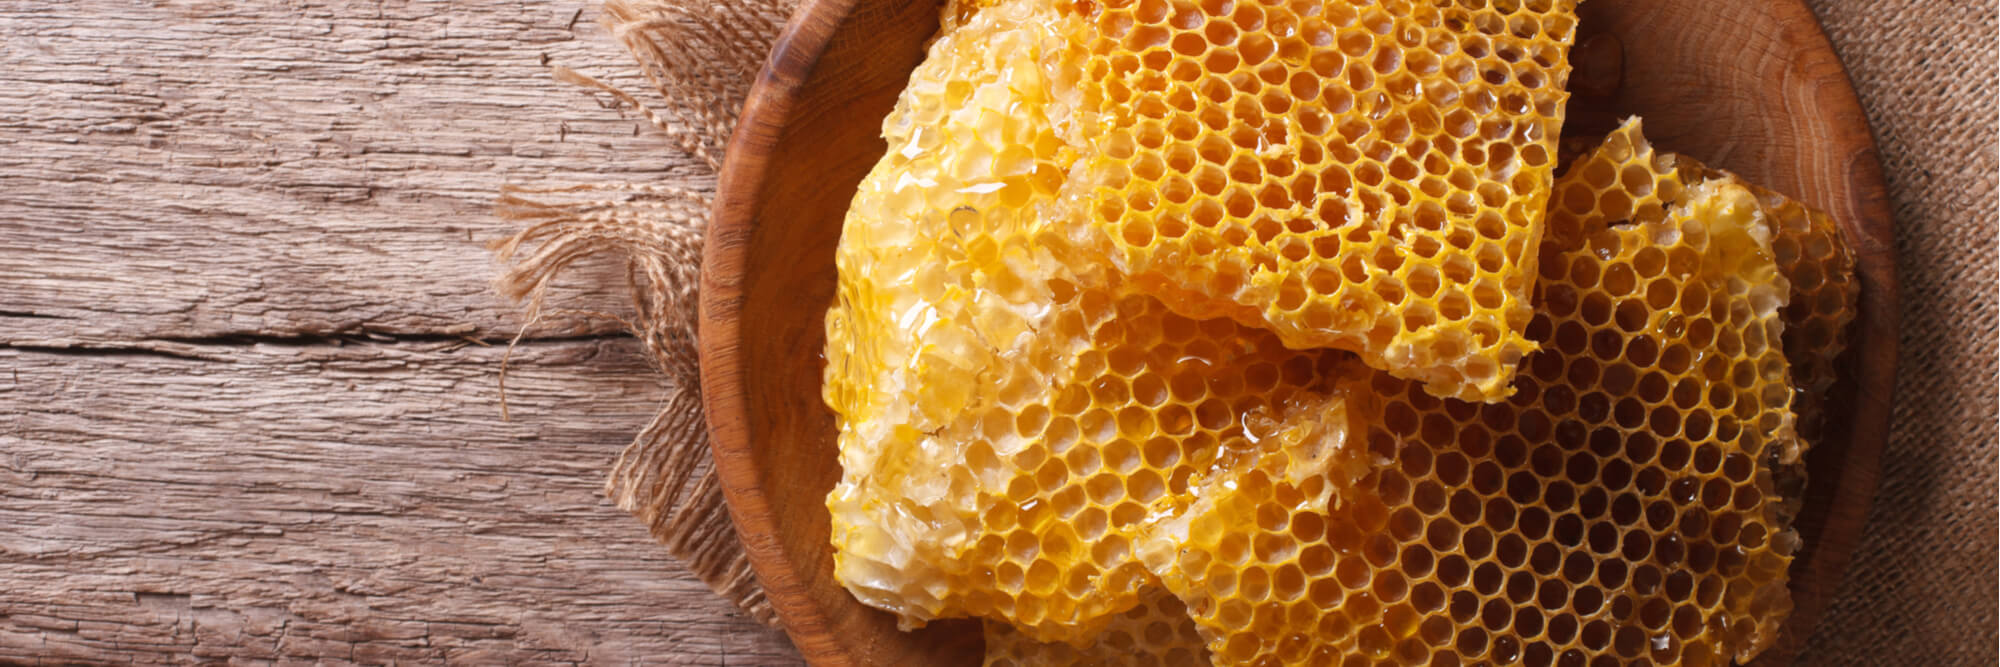 Beeswax direct from the hive.